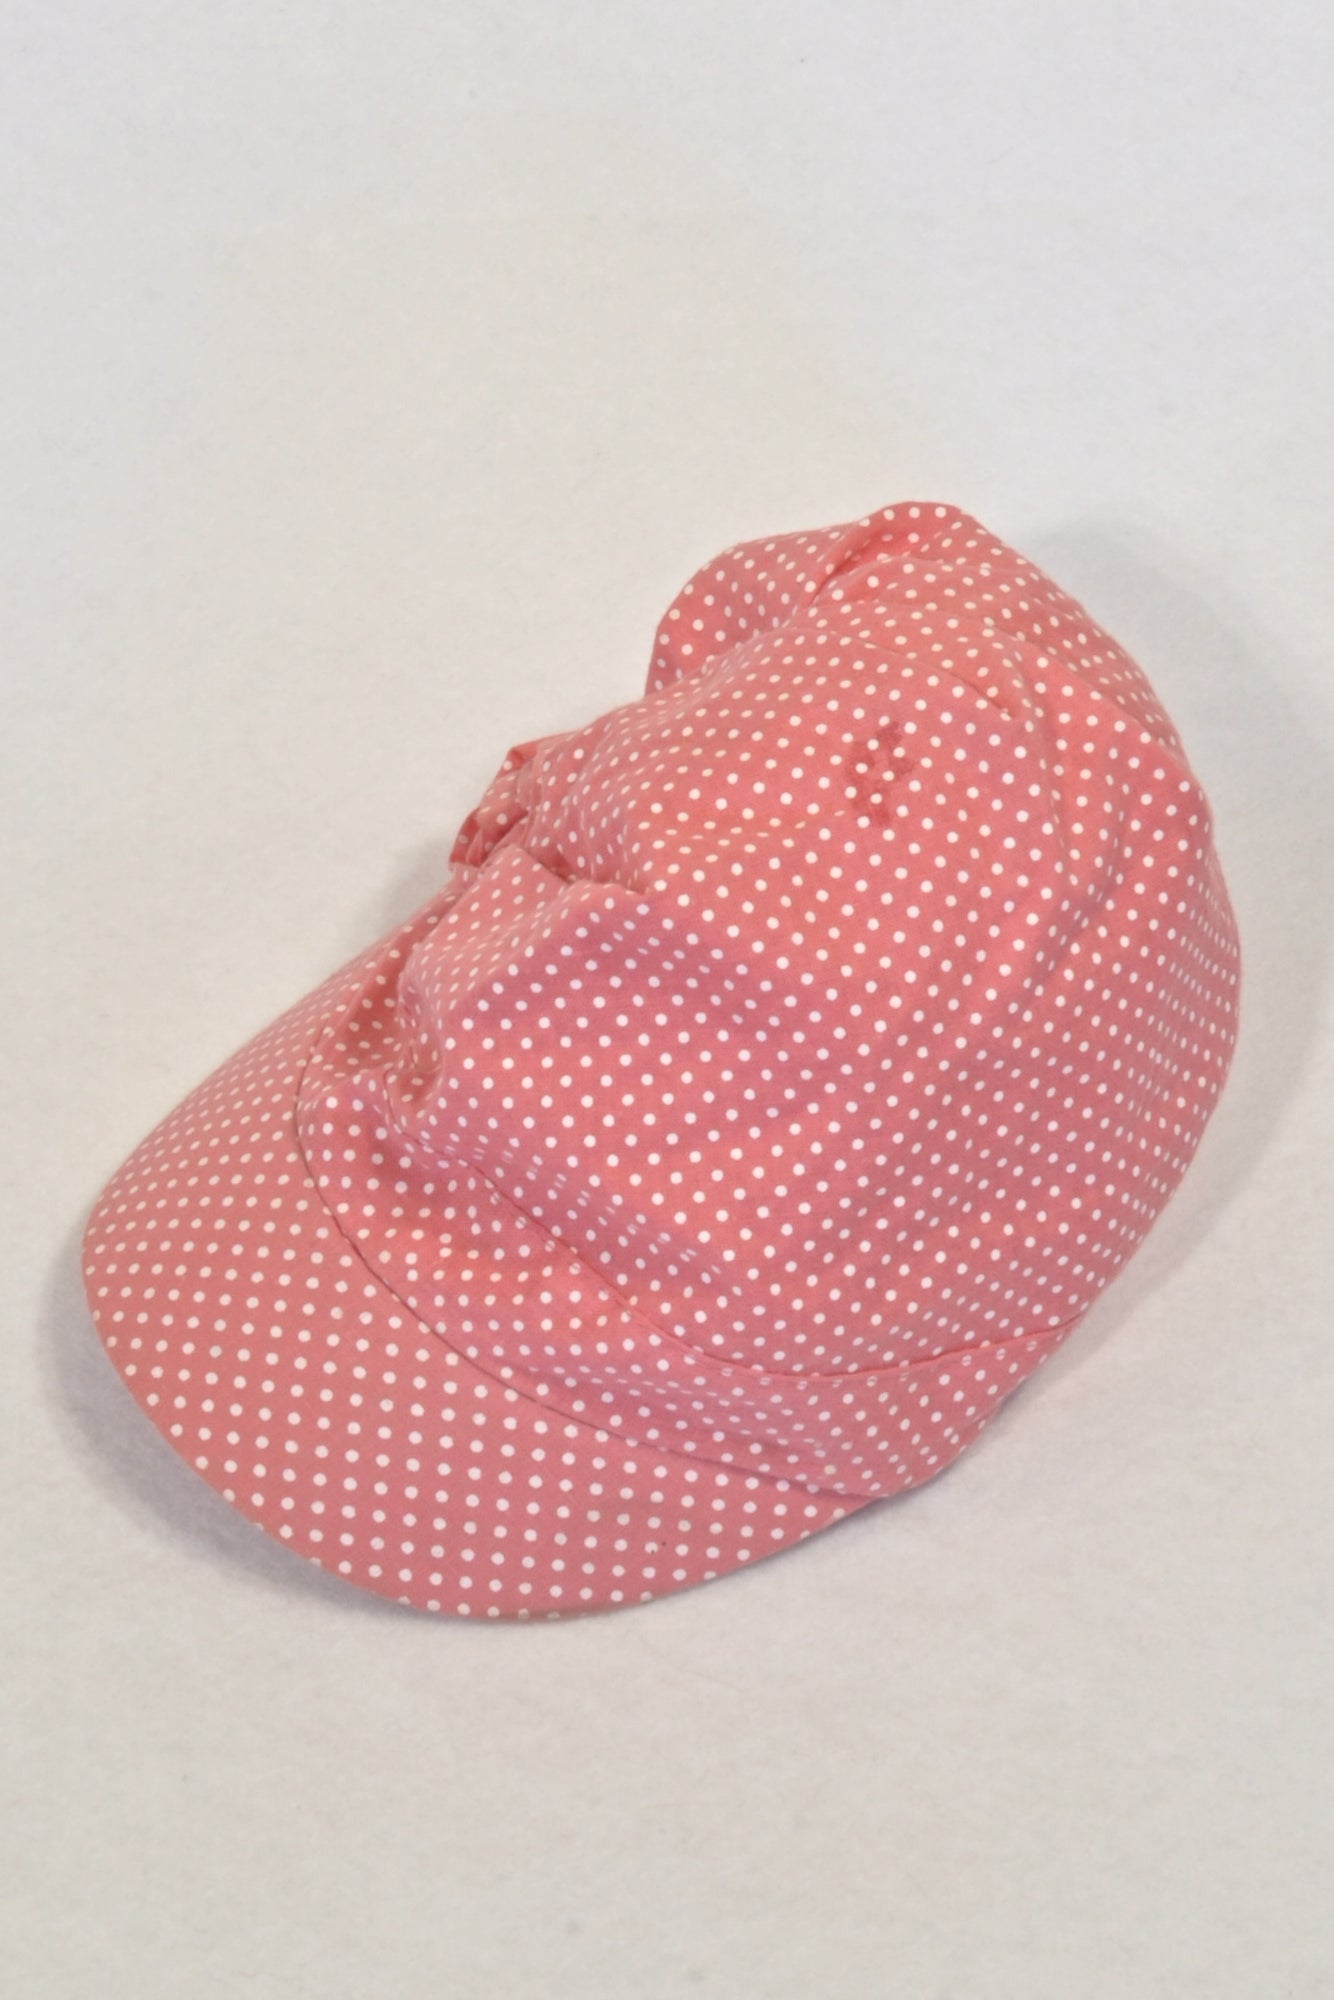 Ackermans Coral & White Dotty Bonnet Peak Hat Girls 6-12 months